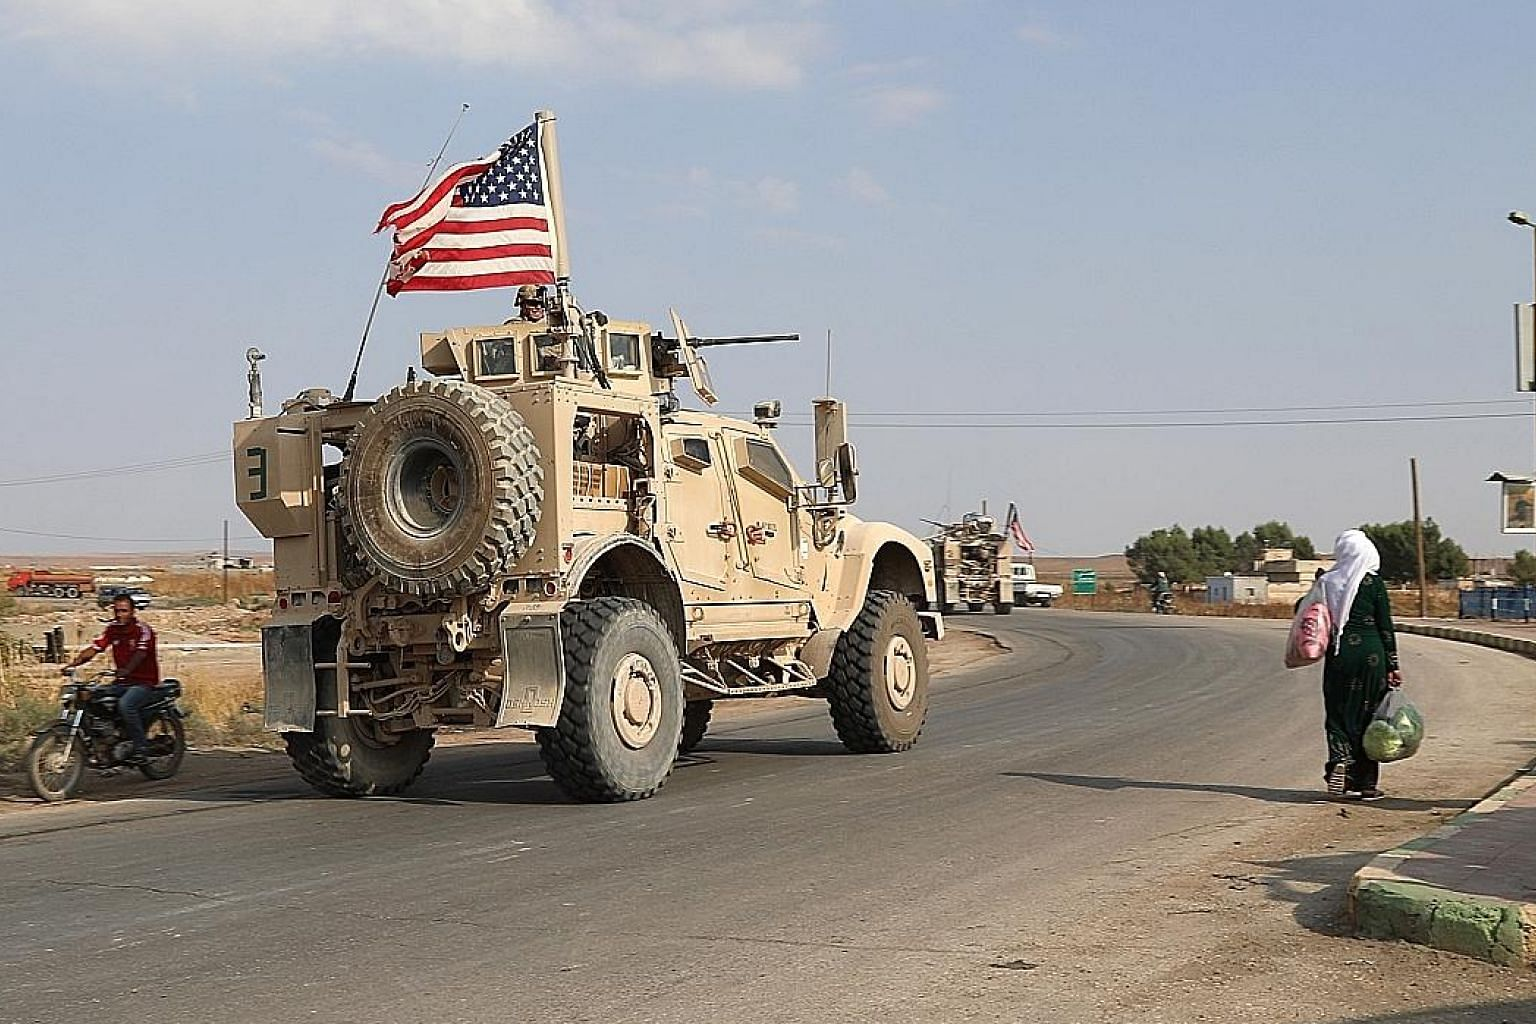 American troops heading towards the Iraqi border in north-eastern Syria on Sunday, as part of a withdrawal announced by President Donald Trump which has been criticised in Washington and elsewhere.